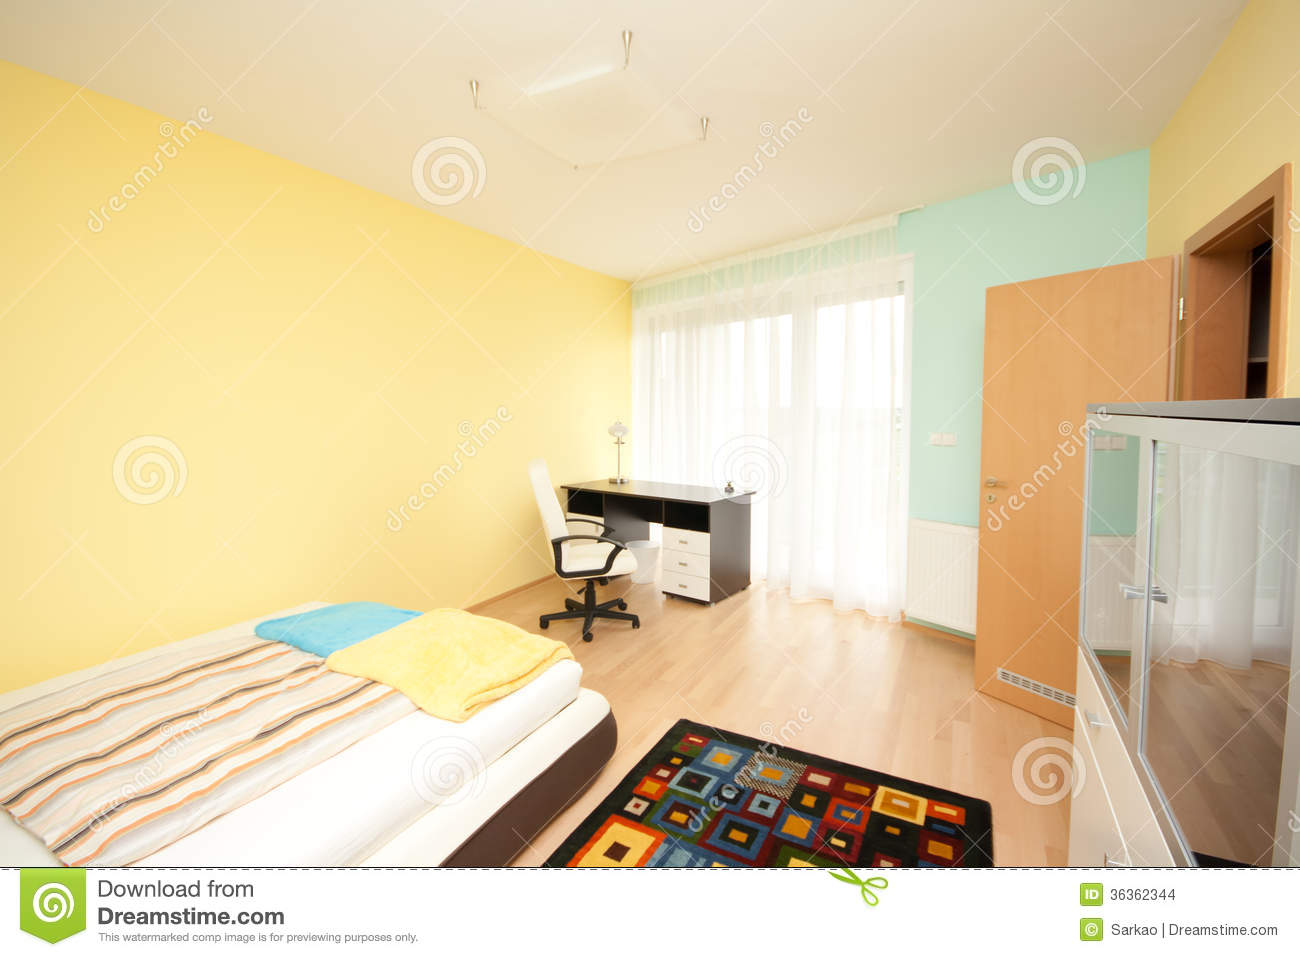 Simple bedroom stock images image 36362344 - Image of simple bedroom ...